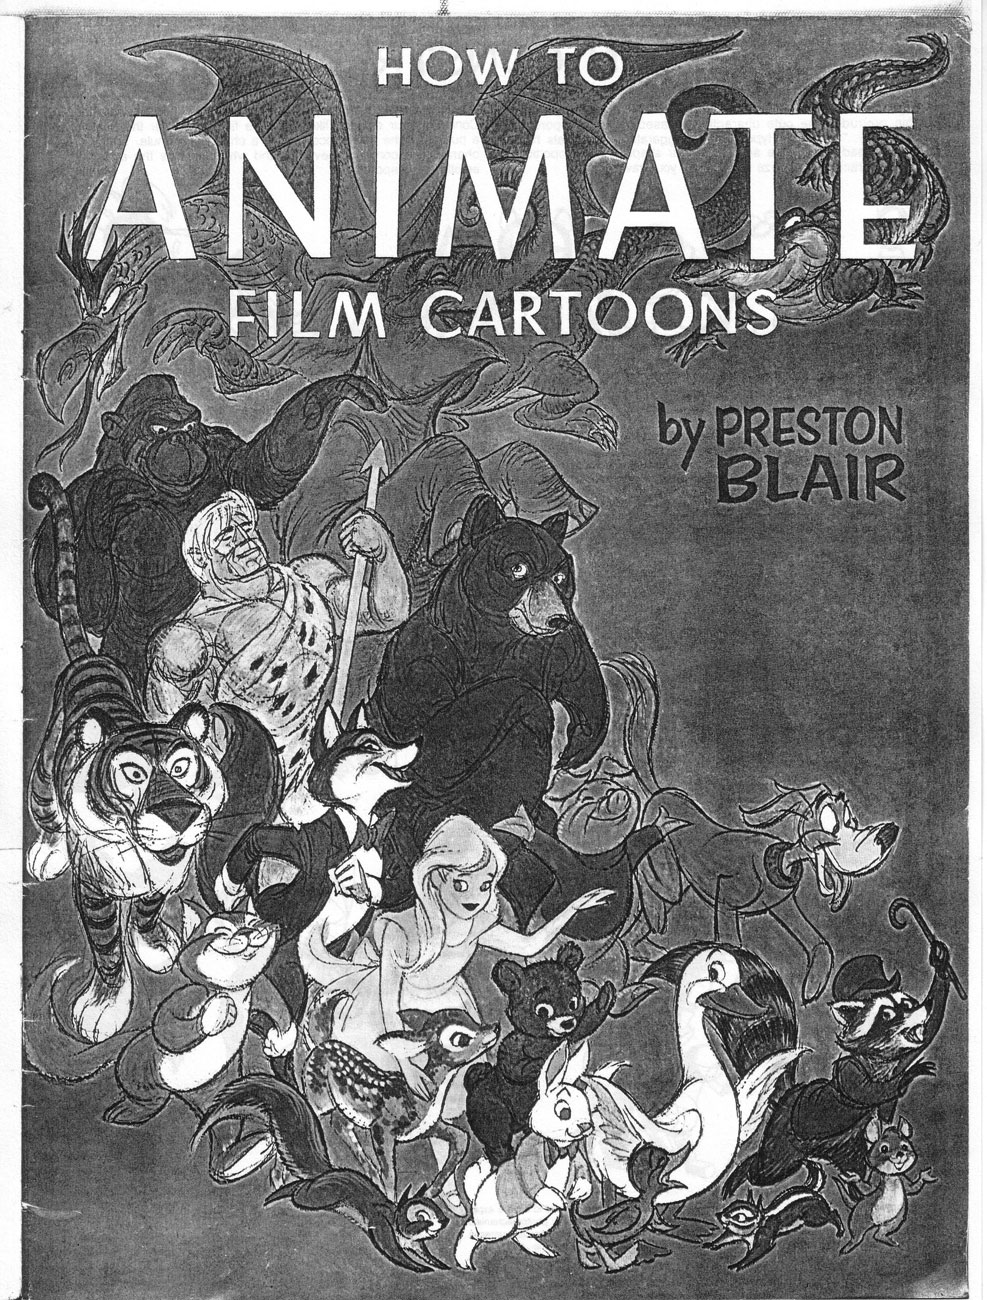 http://2.bp.blogspot.com/-ipvvANS2dhs/TnO2HG2uW5I/AAAAAAAAV7g/OIqv_pWsrMo/s1600/preston_blair_how_to_animate_film_cartoons_1.jpg